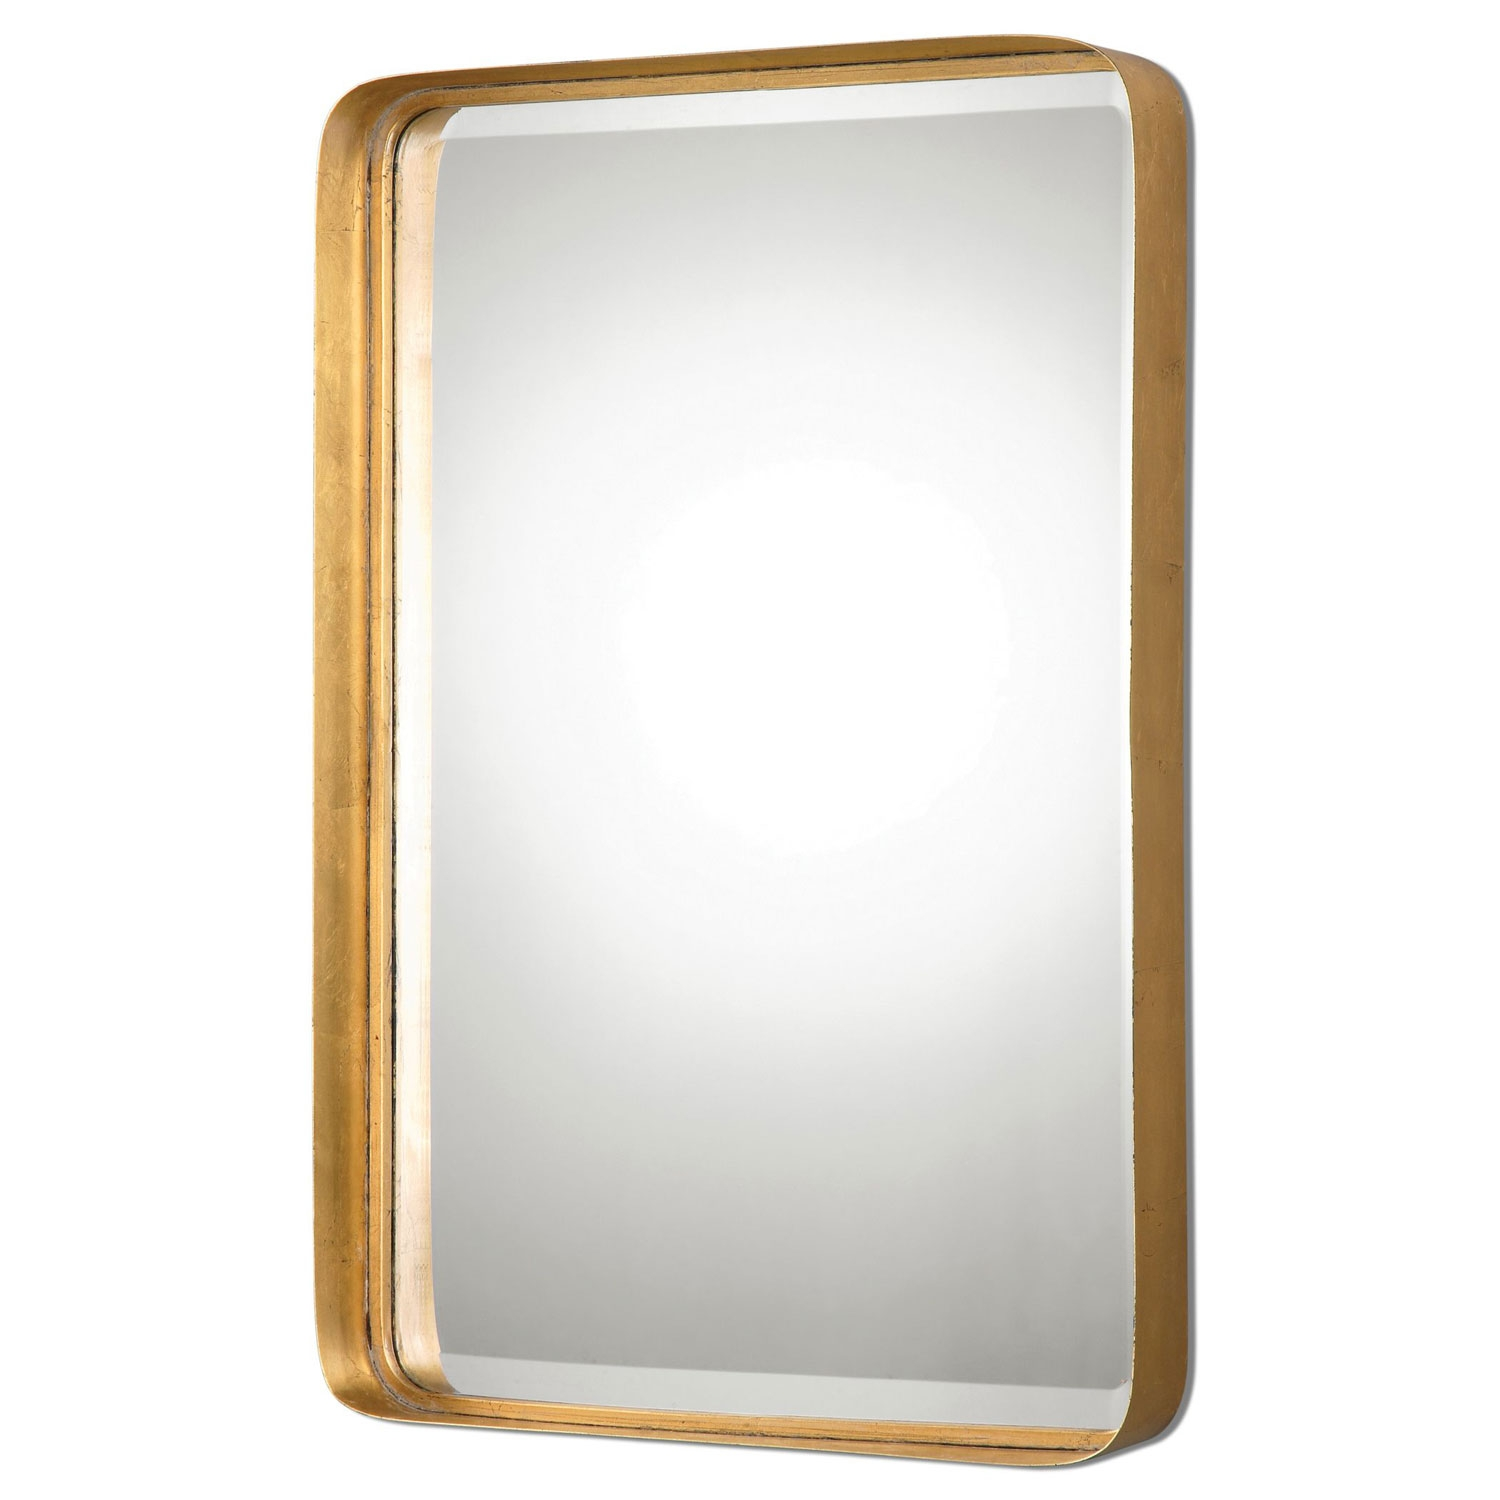 Crofton Antique Gold Mirror Uttermost Rectangle Mirrors Home Decor Throughout Antique Gold Mirrors (Image 7 of 15)